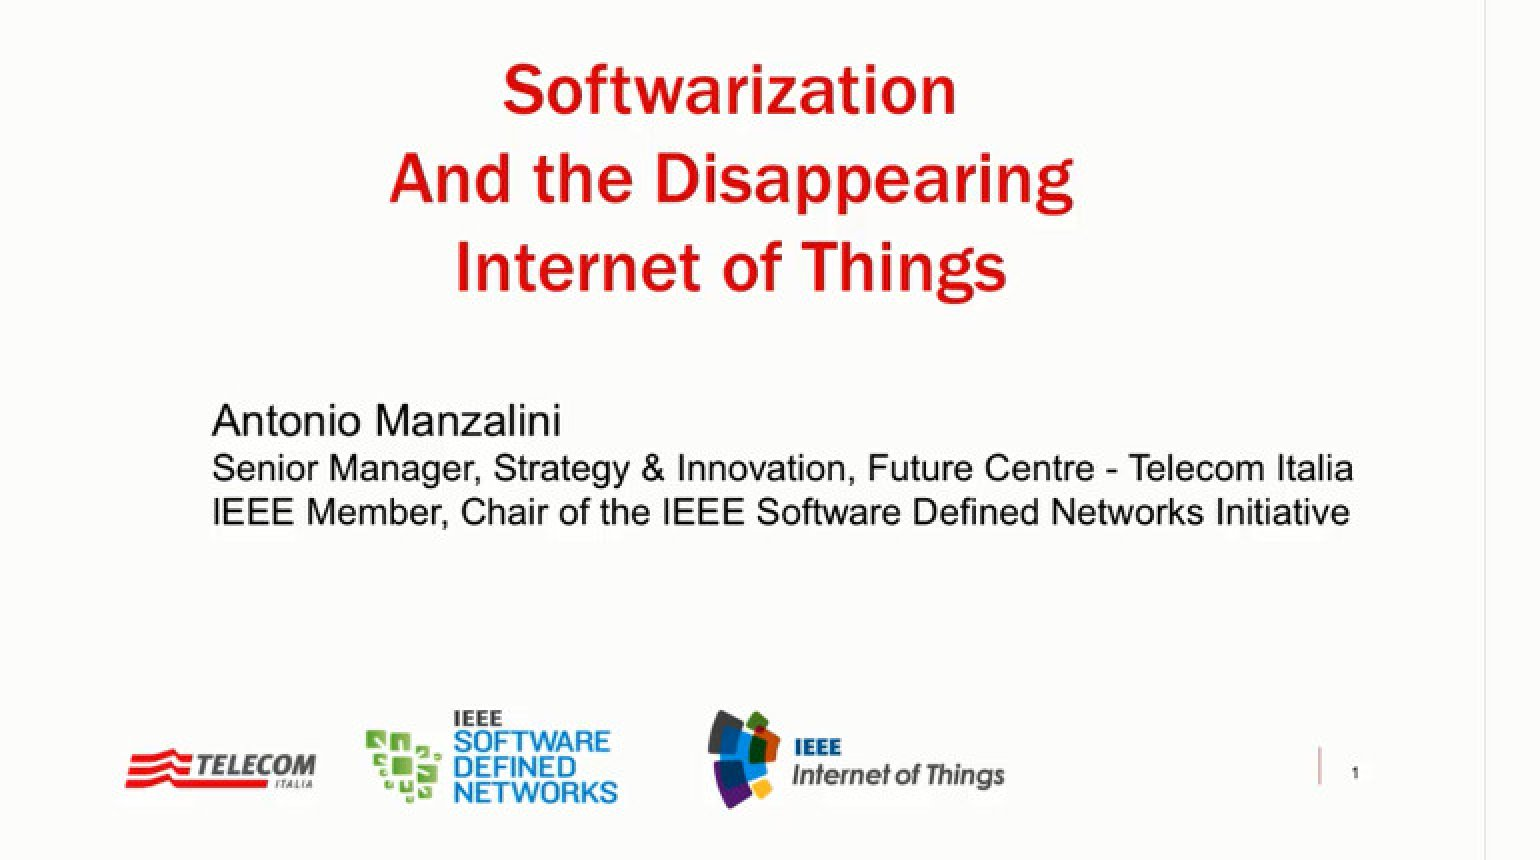 Softwarization and the Disappearing Internet of Things